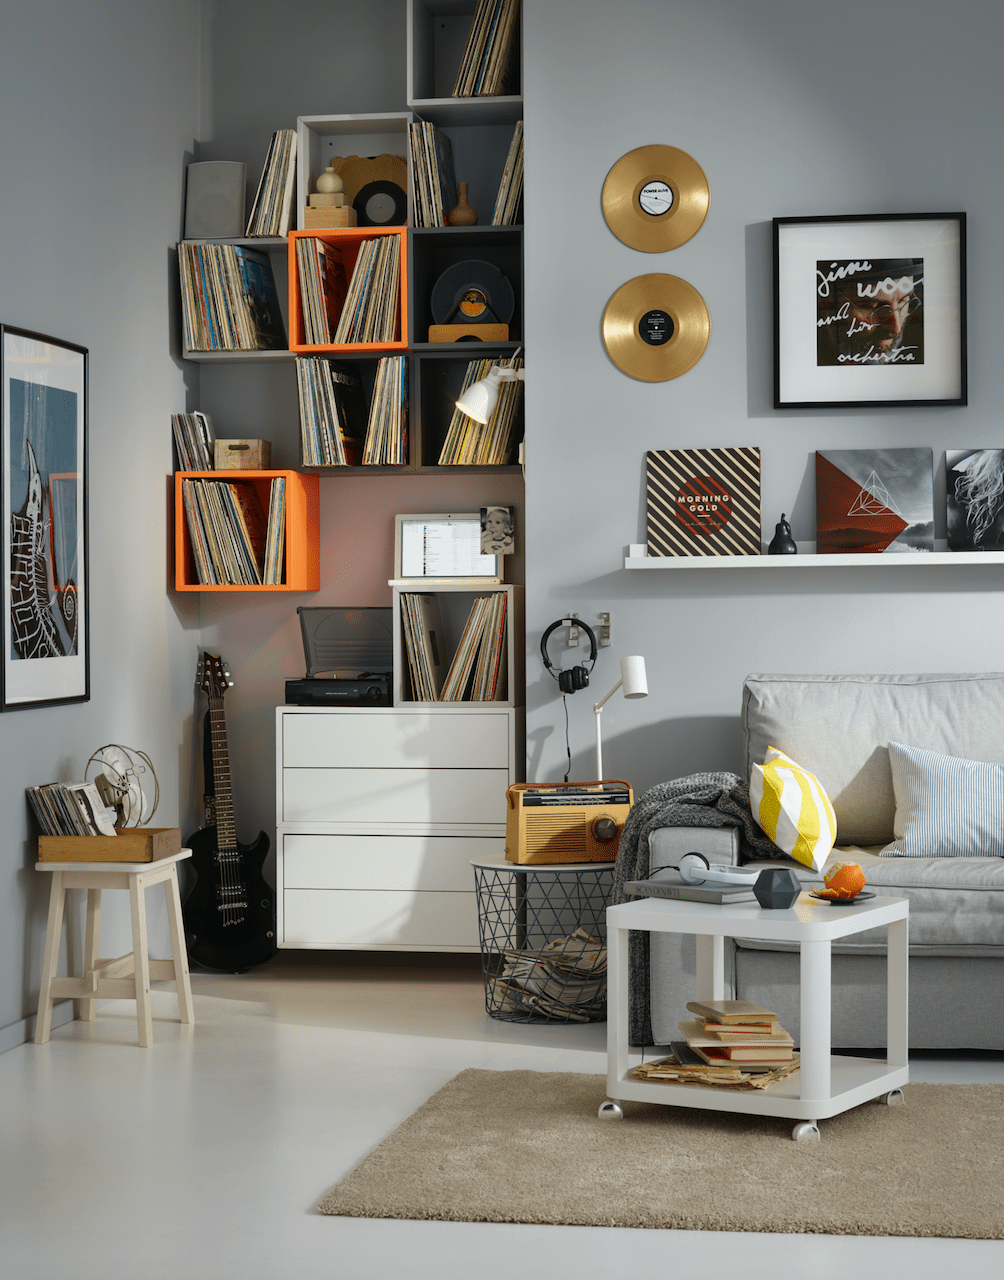 Vimle Sofa Ikea Dubai Setting Up Your New Home 10 Must Buys From Ikea Connected To India